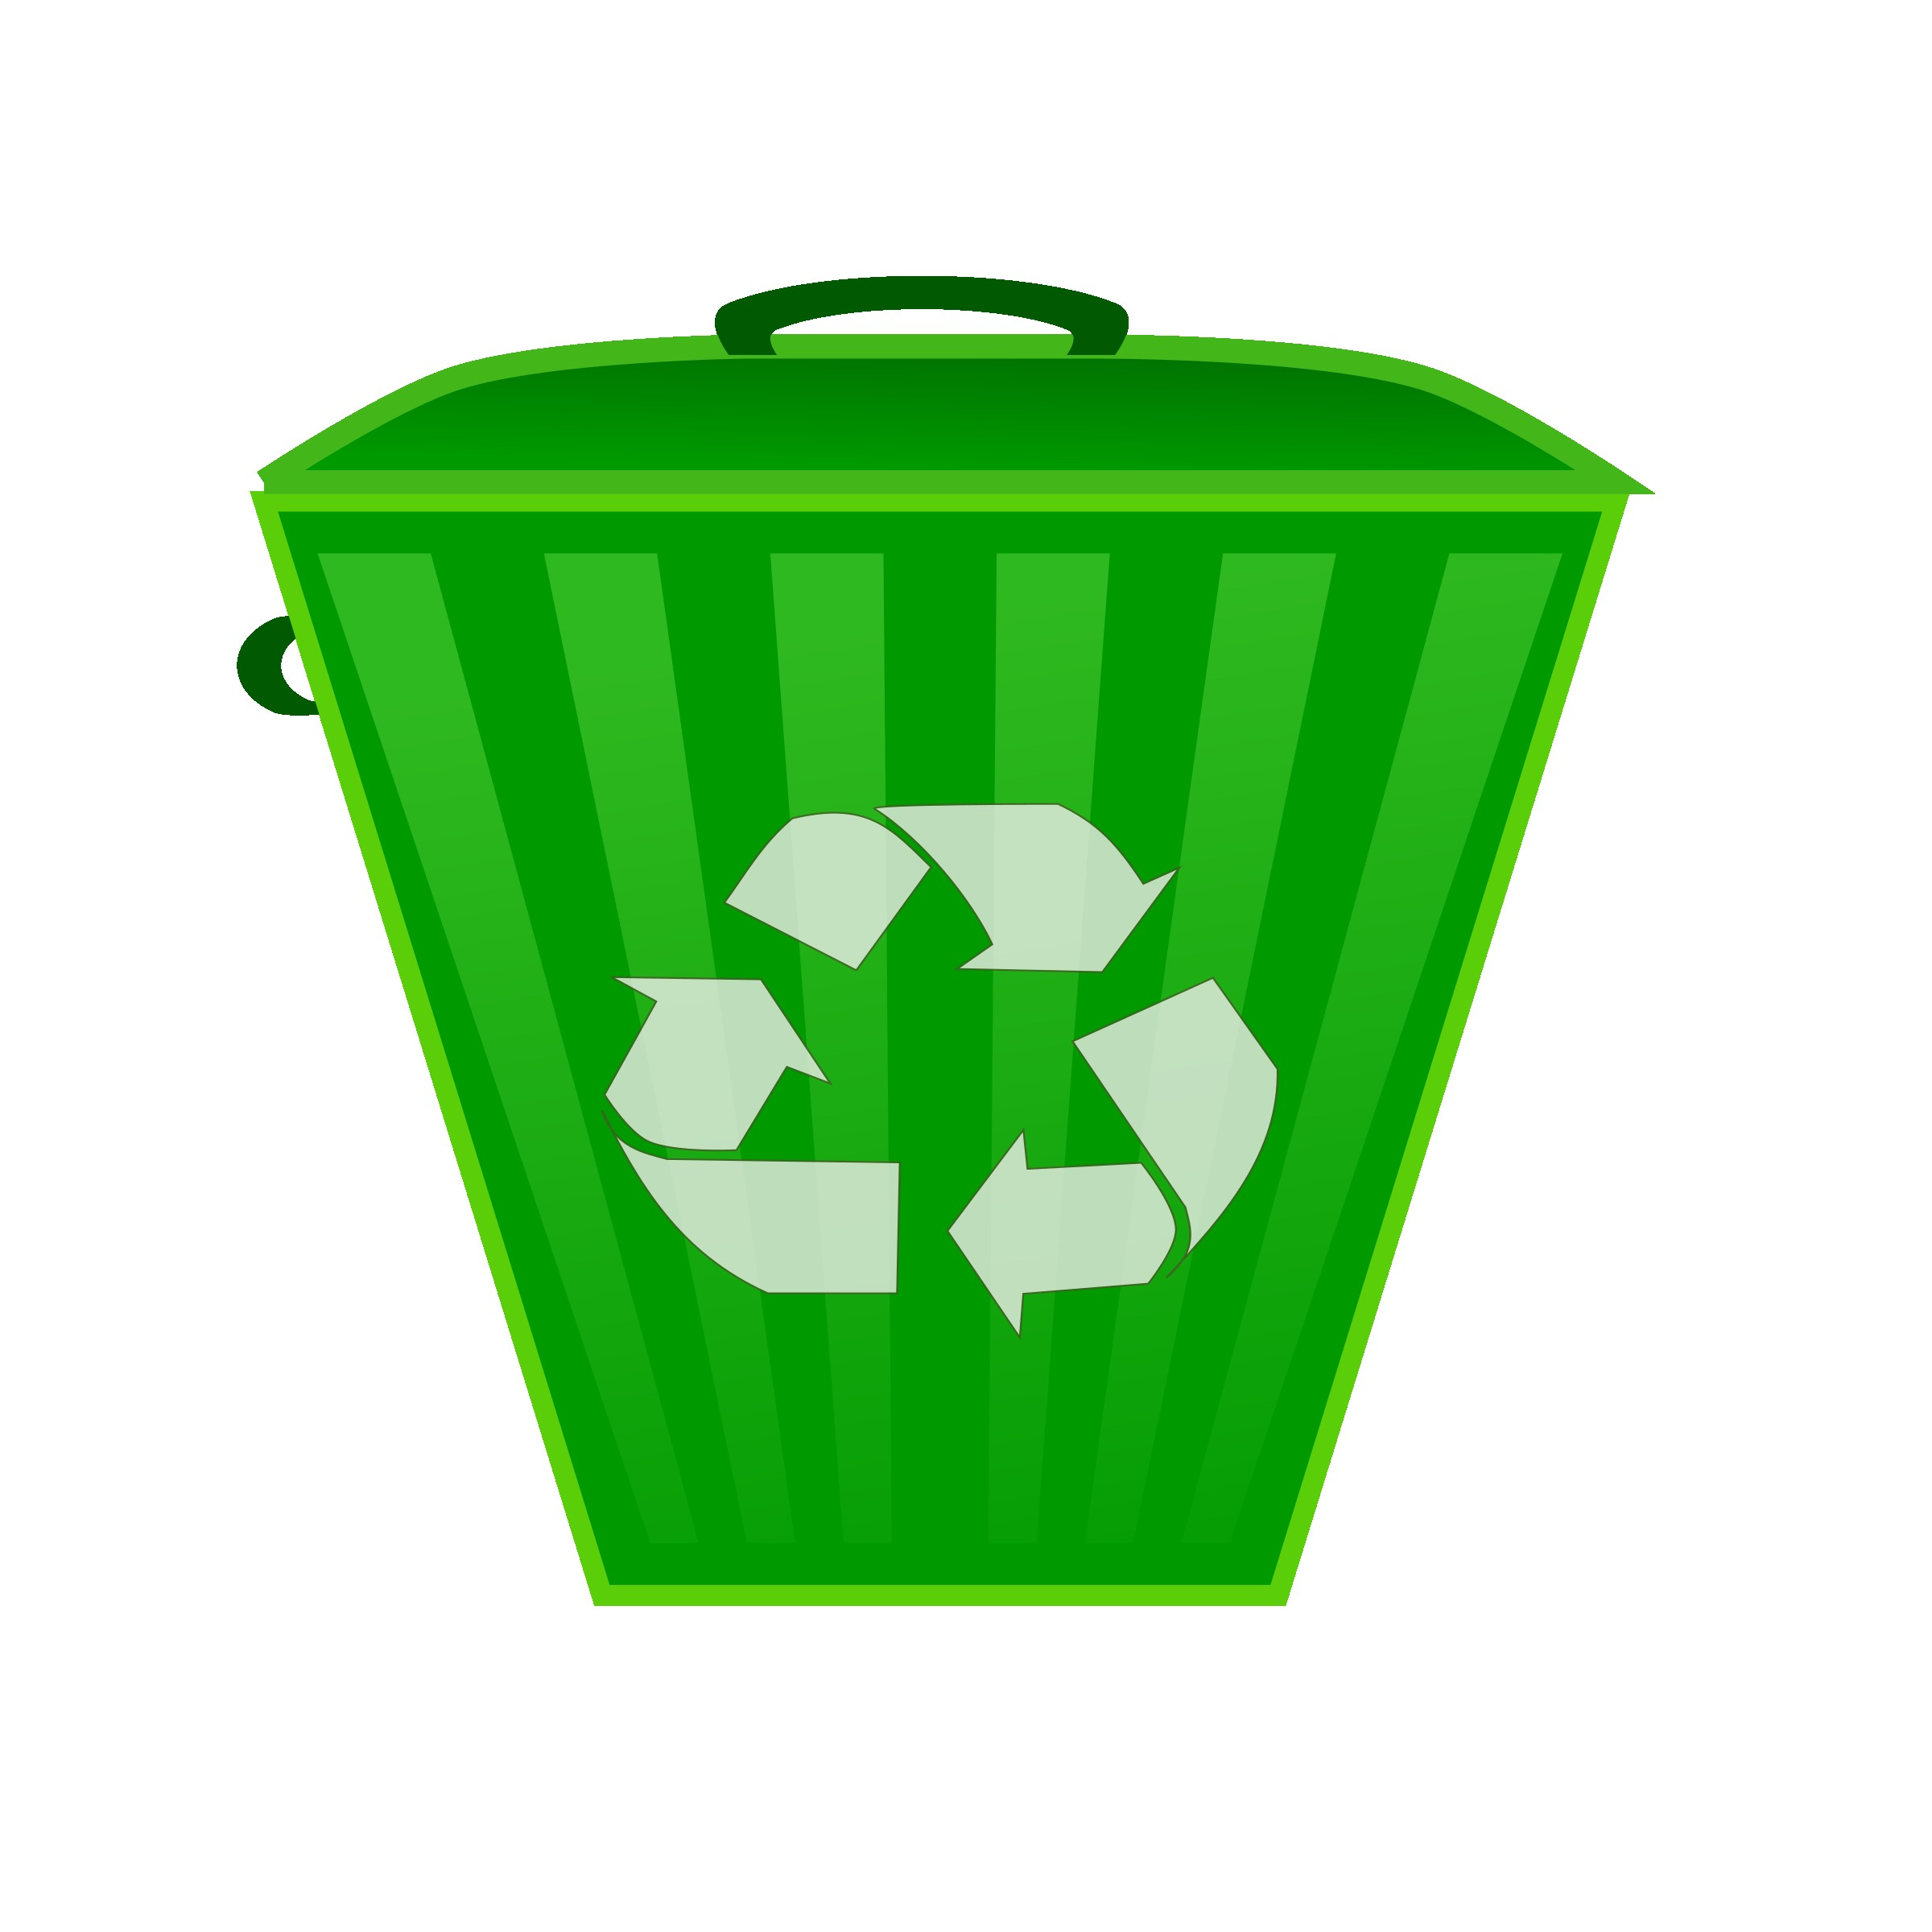 2400x2400 Trash Bin With Recycle Symbol Png Clip Art Best Web Clipart